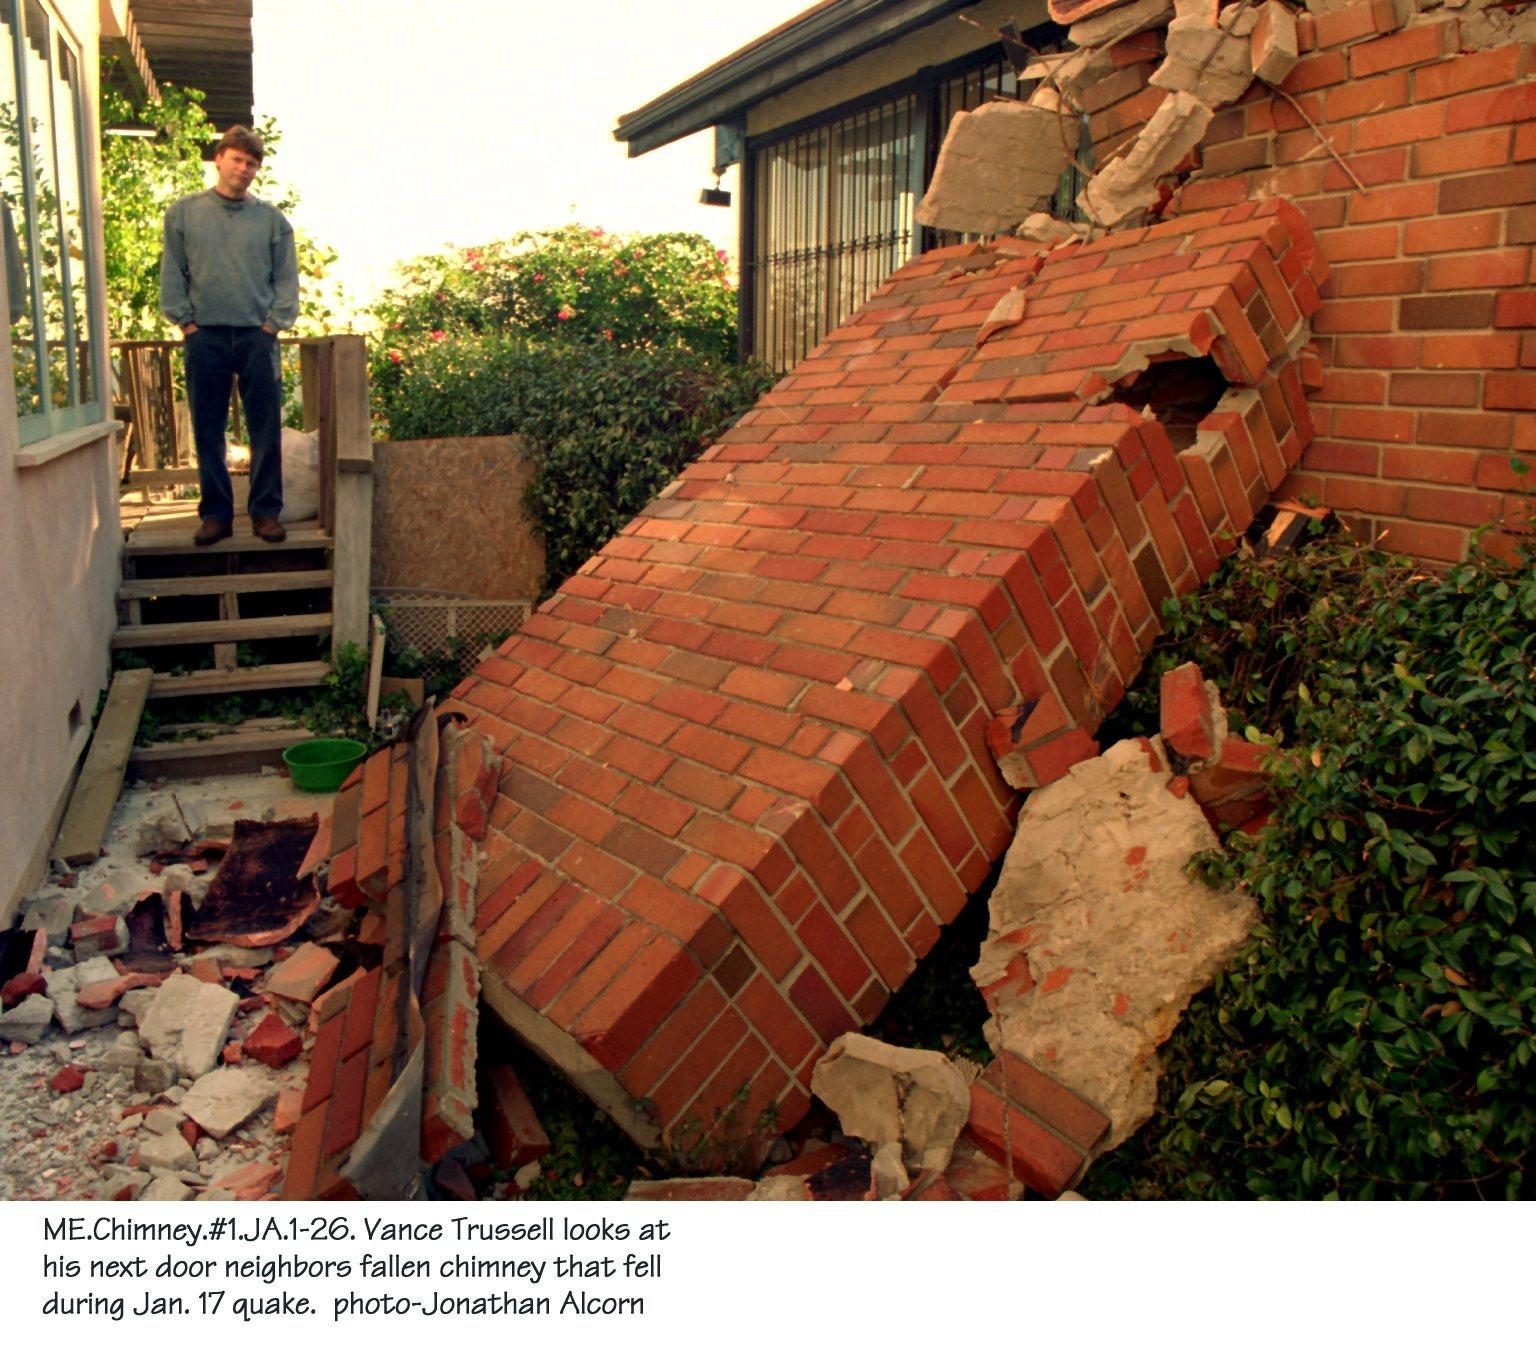 Vance Trussell looks at his next door neighbor's fallen chimney after the 1994 Northridge earthquake.